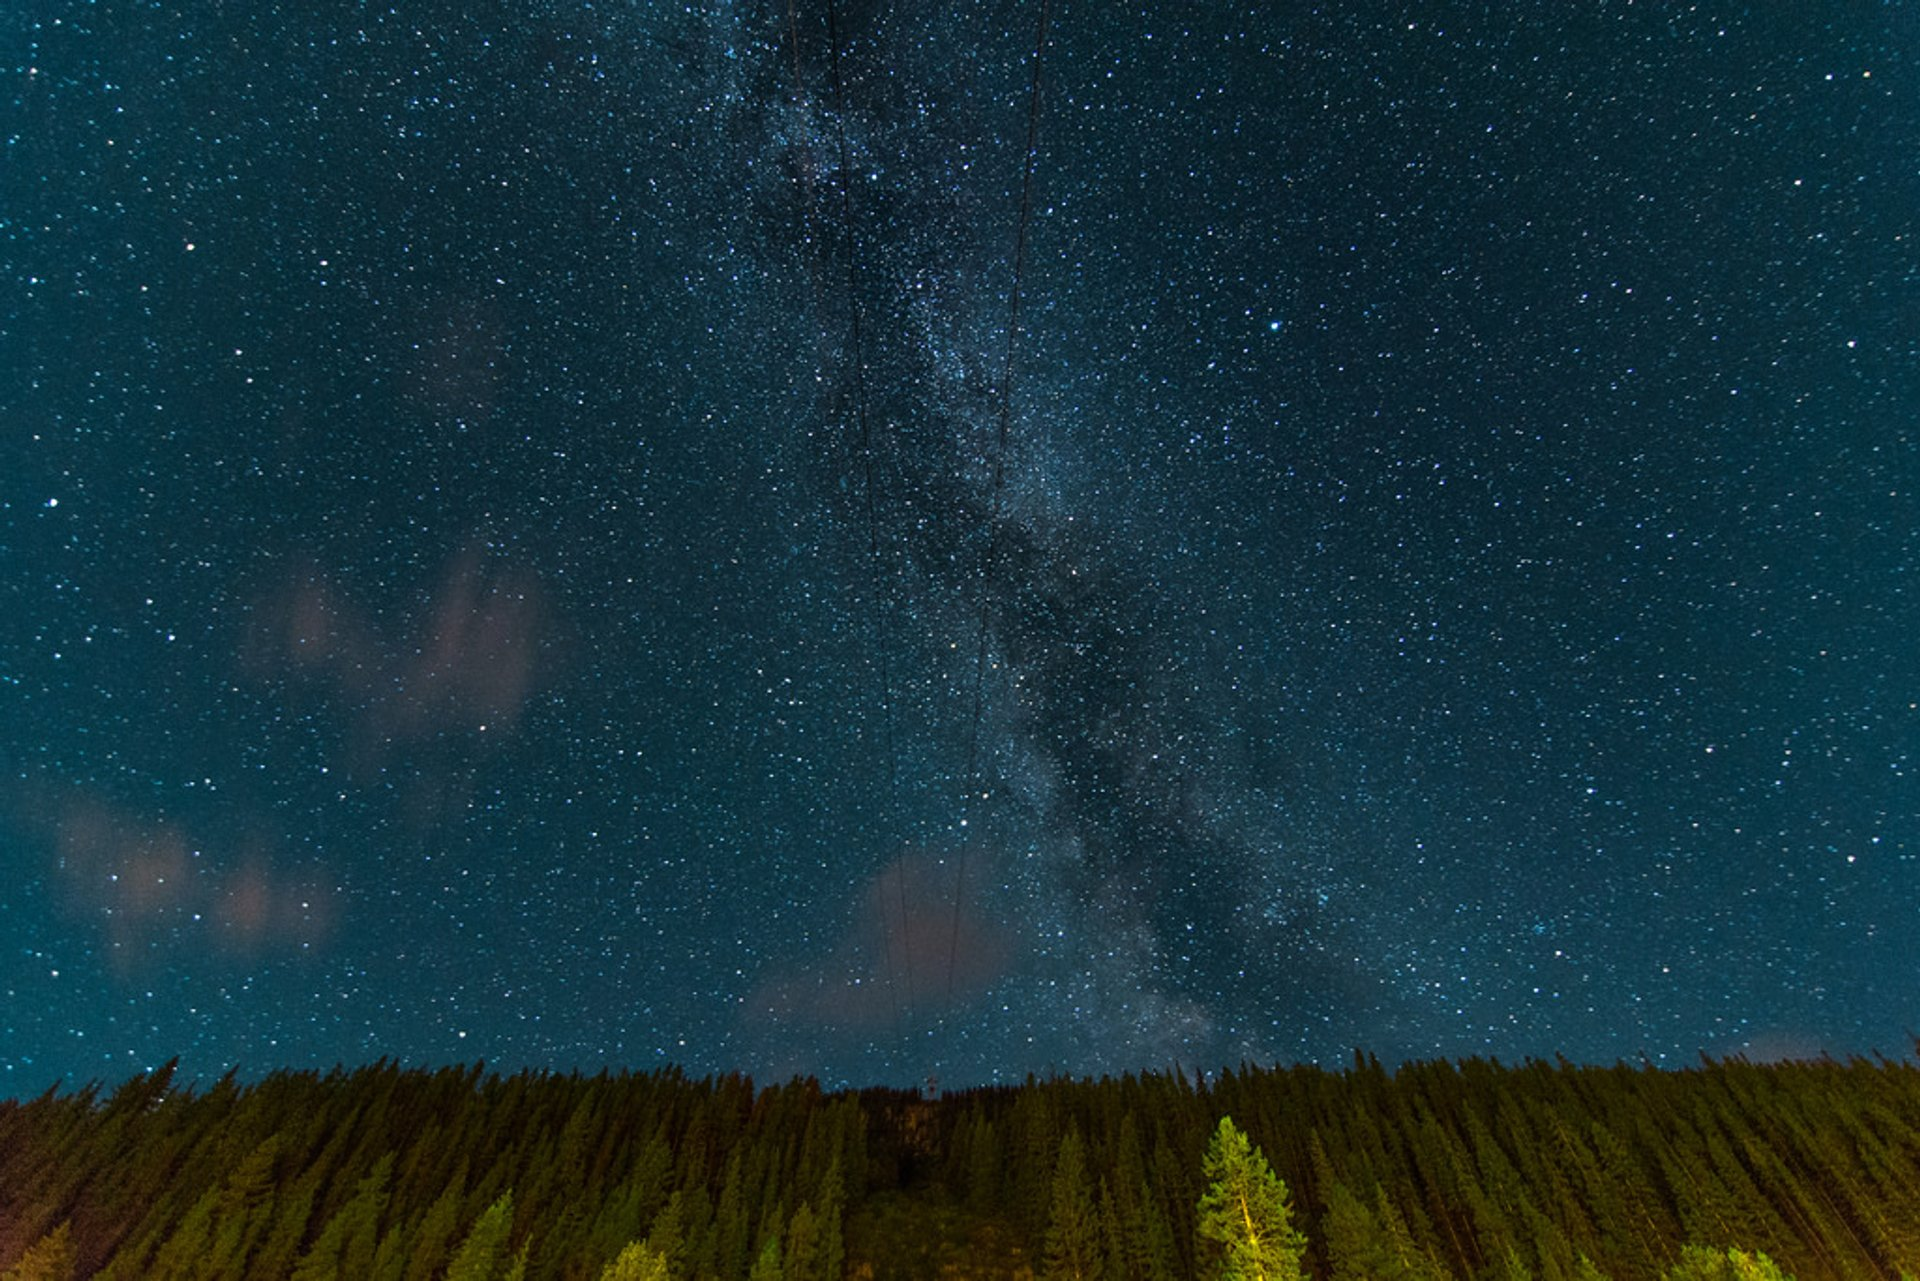 Jasper Dark Sky Festival in Banff & Jasper National Parks 2019 - Best Time